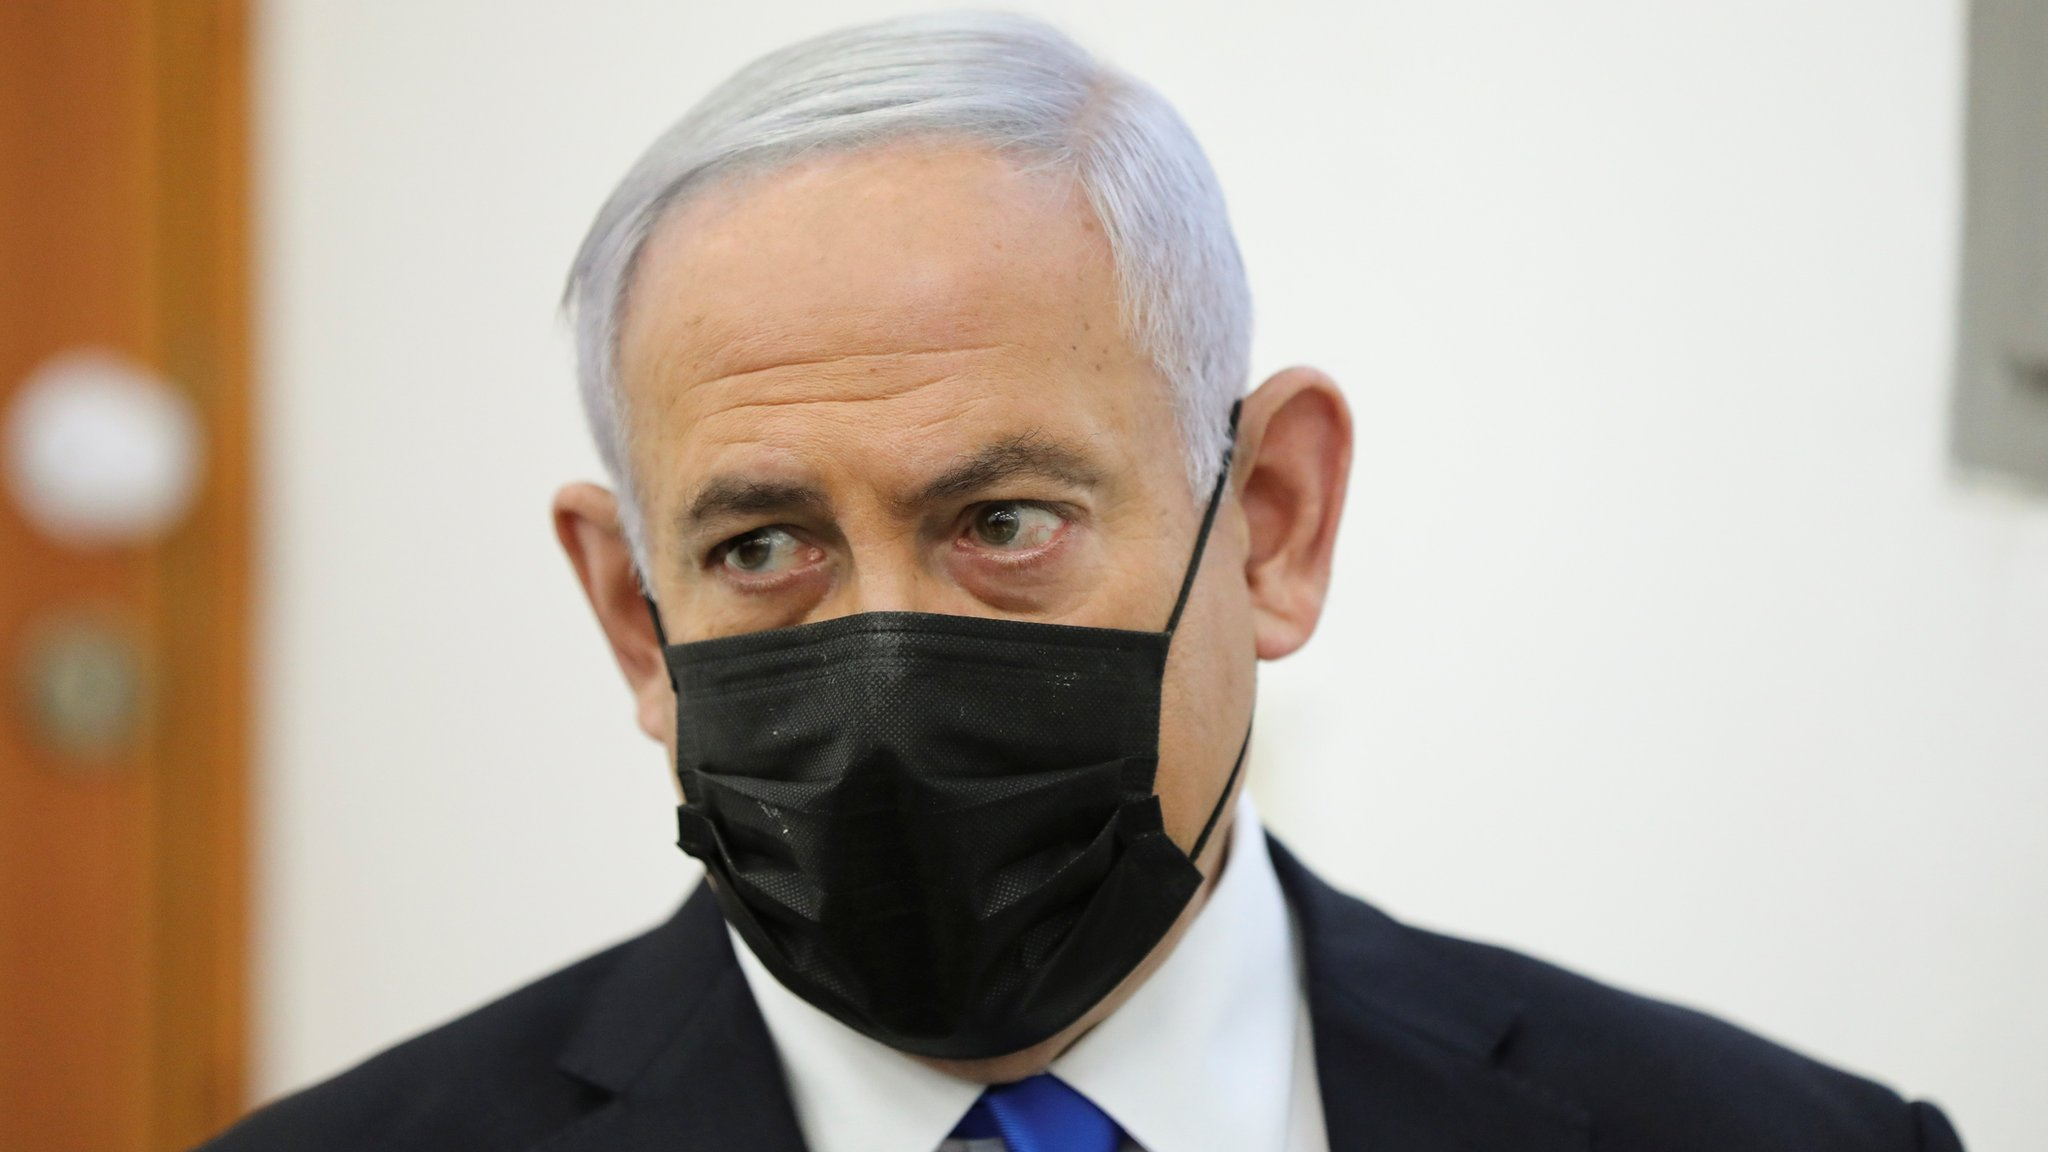 Netanyahu announced the intensification of strikes on the Gaza Strip